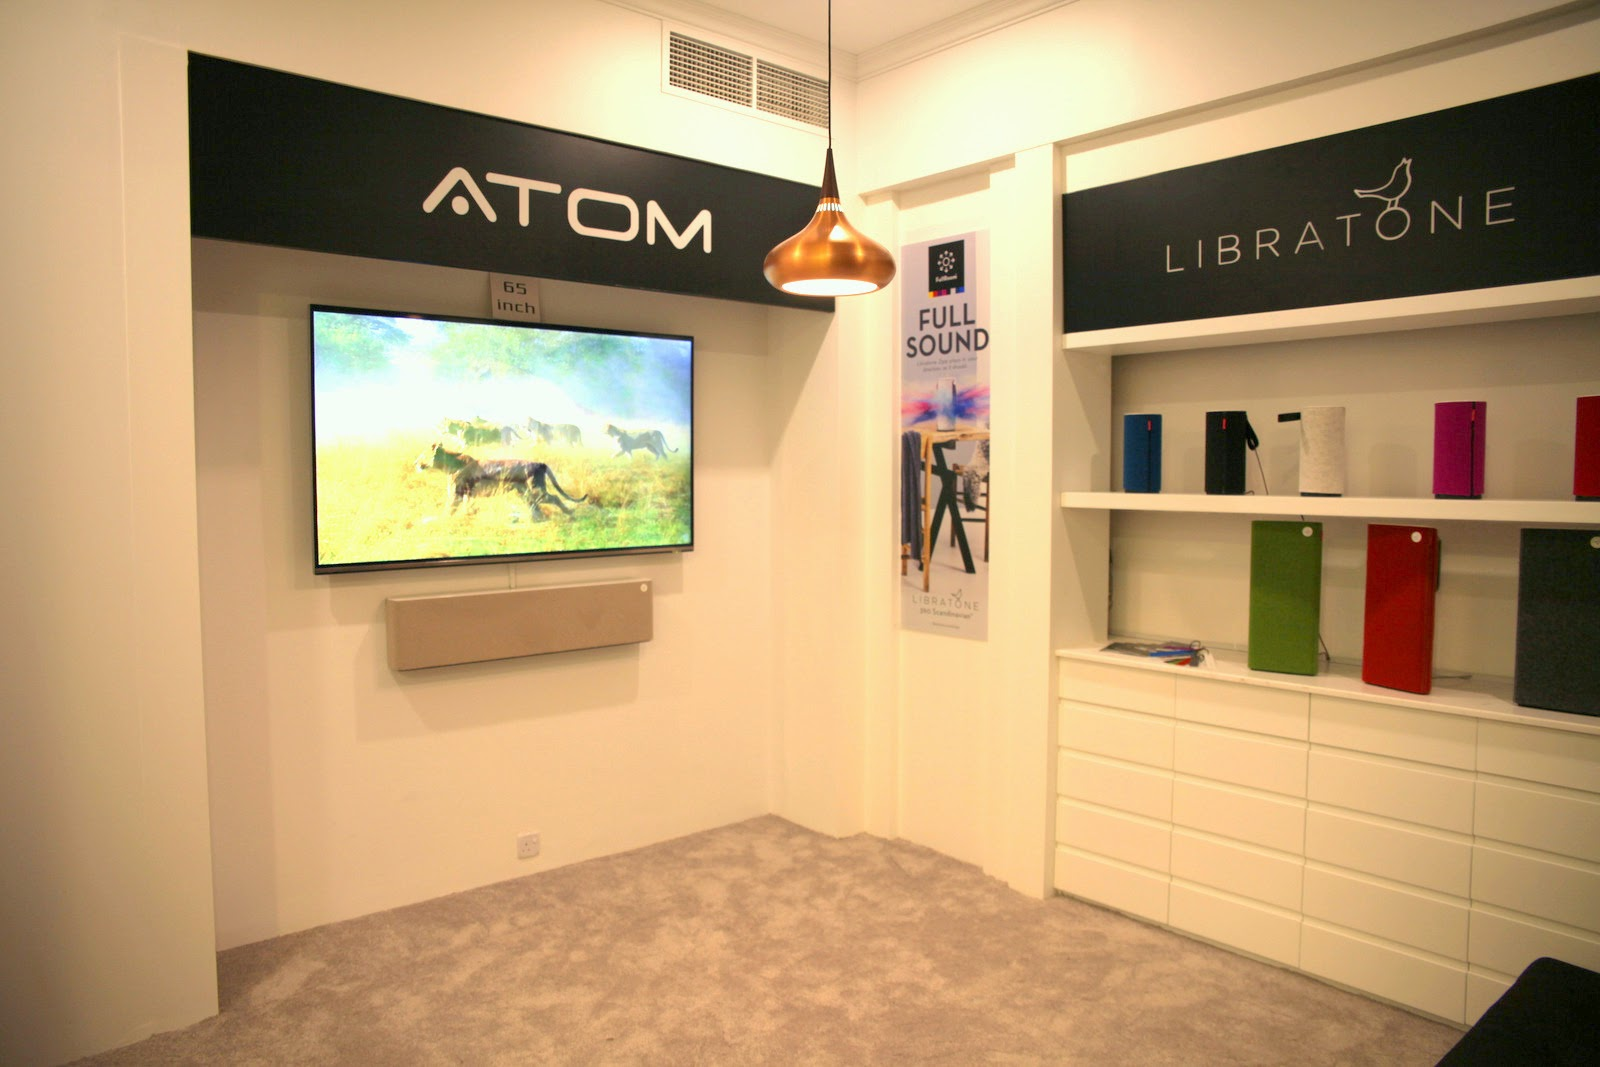 Atom Lifestyle System with Libratone